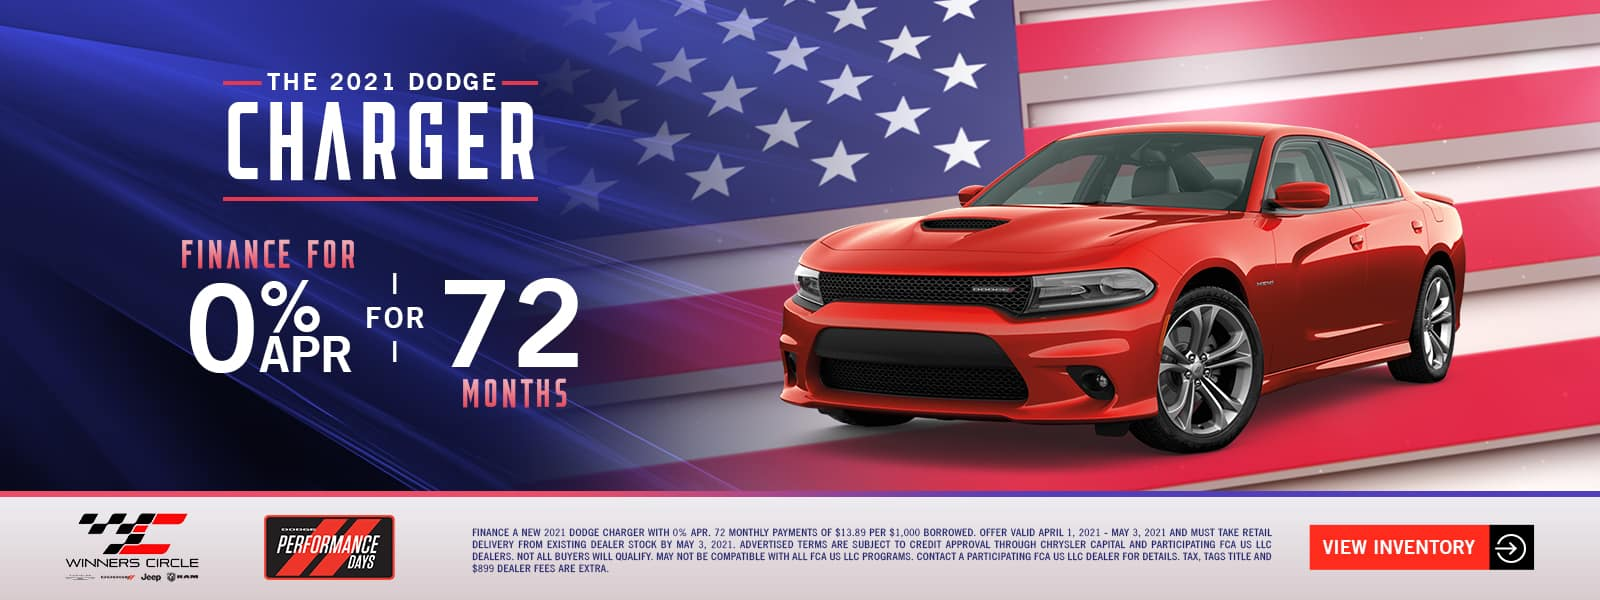 The 2021 Dodge Charger - finance for 0% APR for 72 months